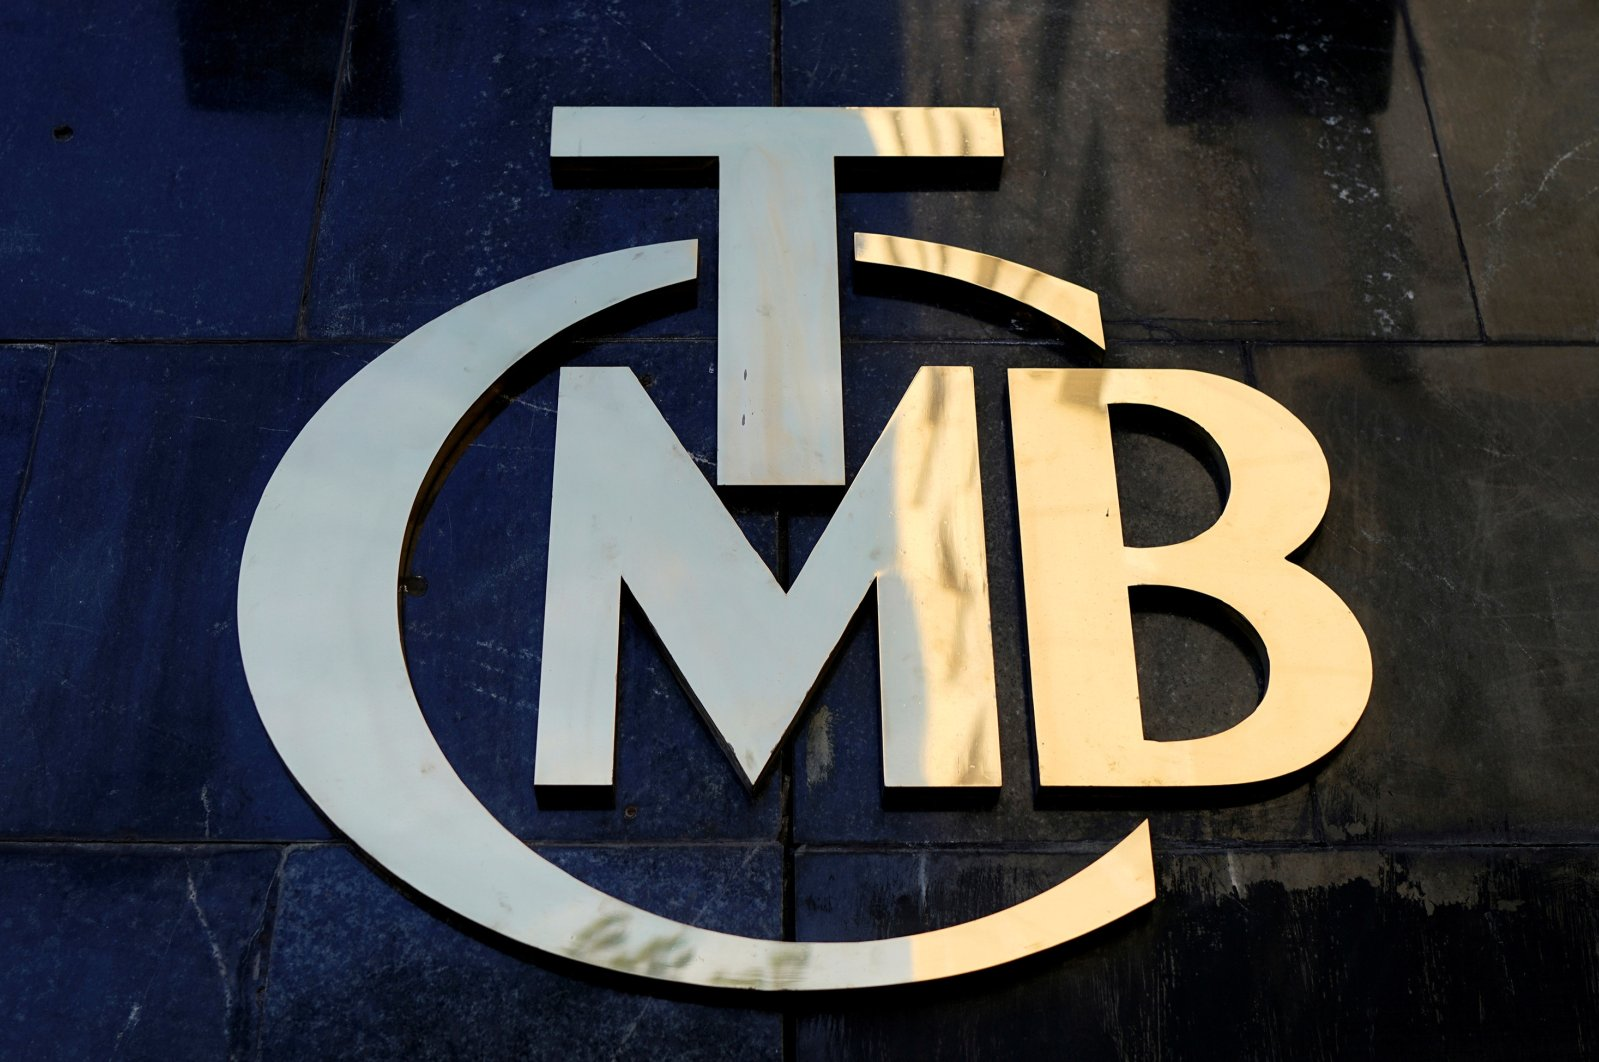 A logo of the Central Bank of the Republic of Turkey (CBRT) is displayed at the entrance of the bank's headquarters in the capital Ankara, April 19, 2015. (Reuters Photo)